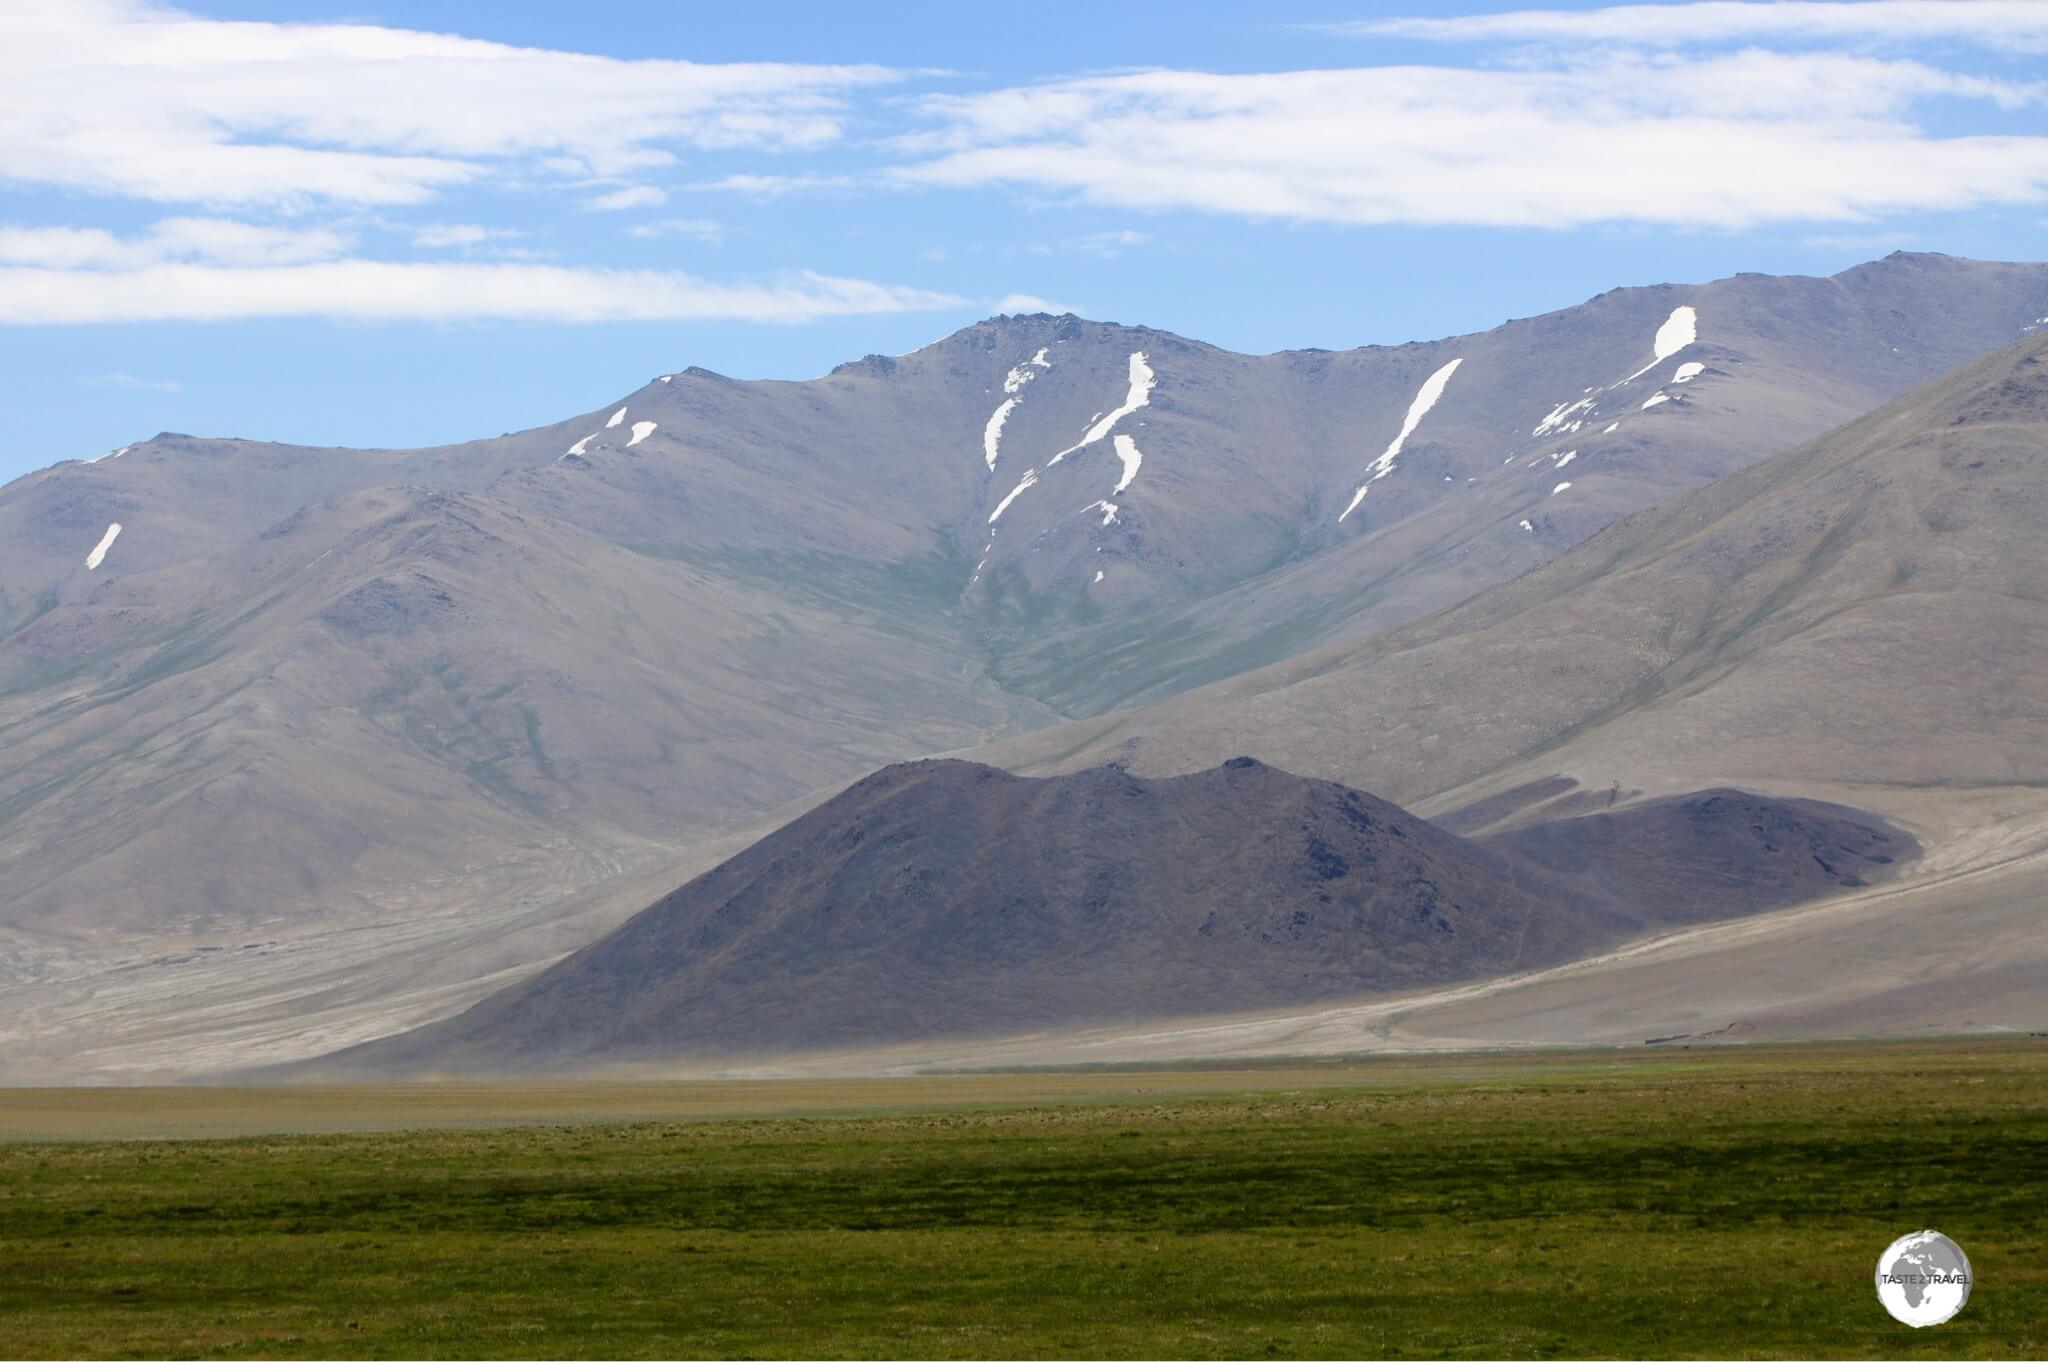 A view from the Pamir highway near the town of Murgab.